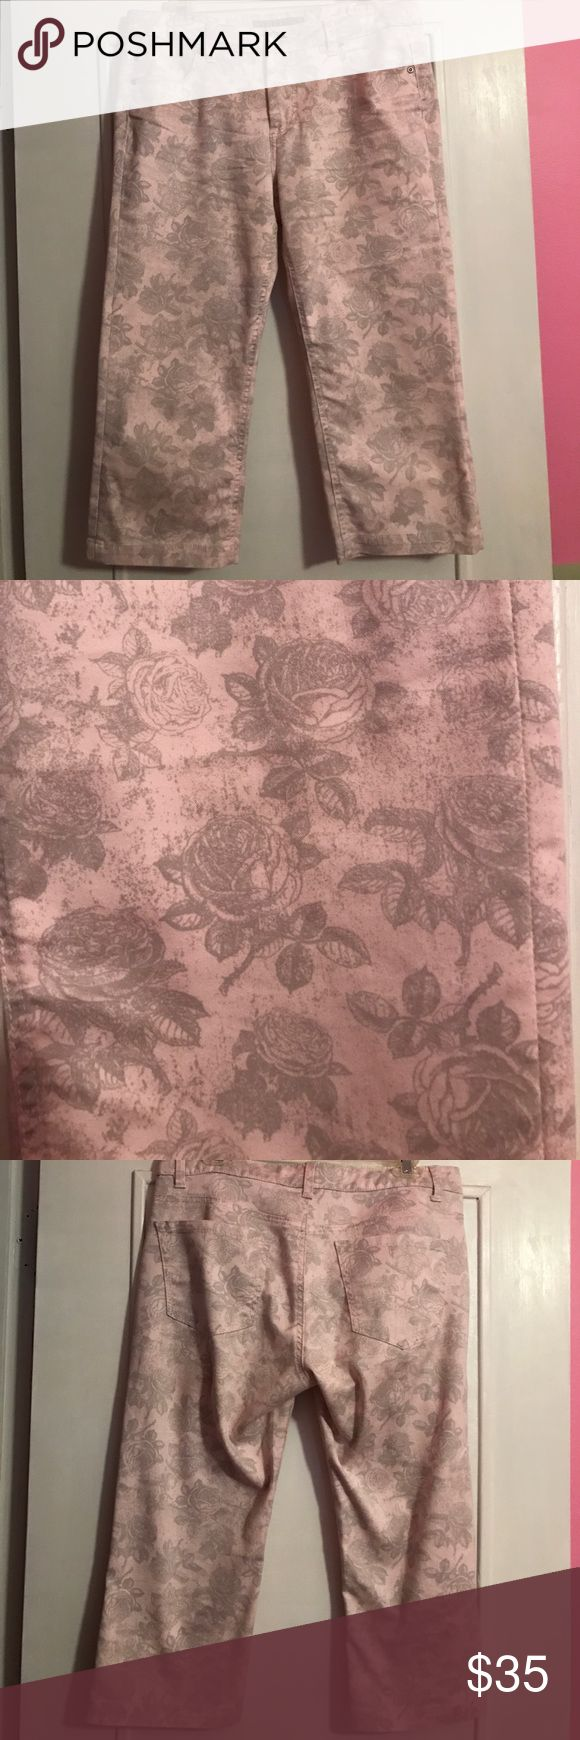 """Soft Pink Floral Printed Capris Excellent used condition, Liverpool Jeans Company pink and gray printed Floral Capris. Size 12. Printed """"Hello Goodbye"""" lyrics inside pocket. Liverpool Jeans Company Jeans Ankle & Cropped"""